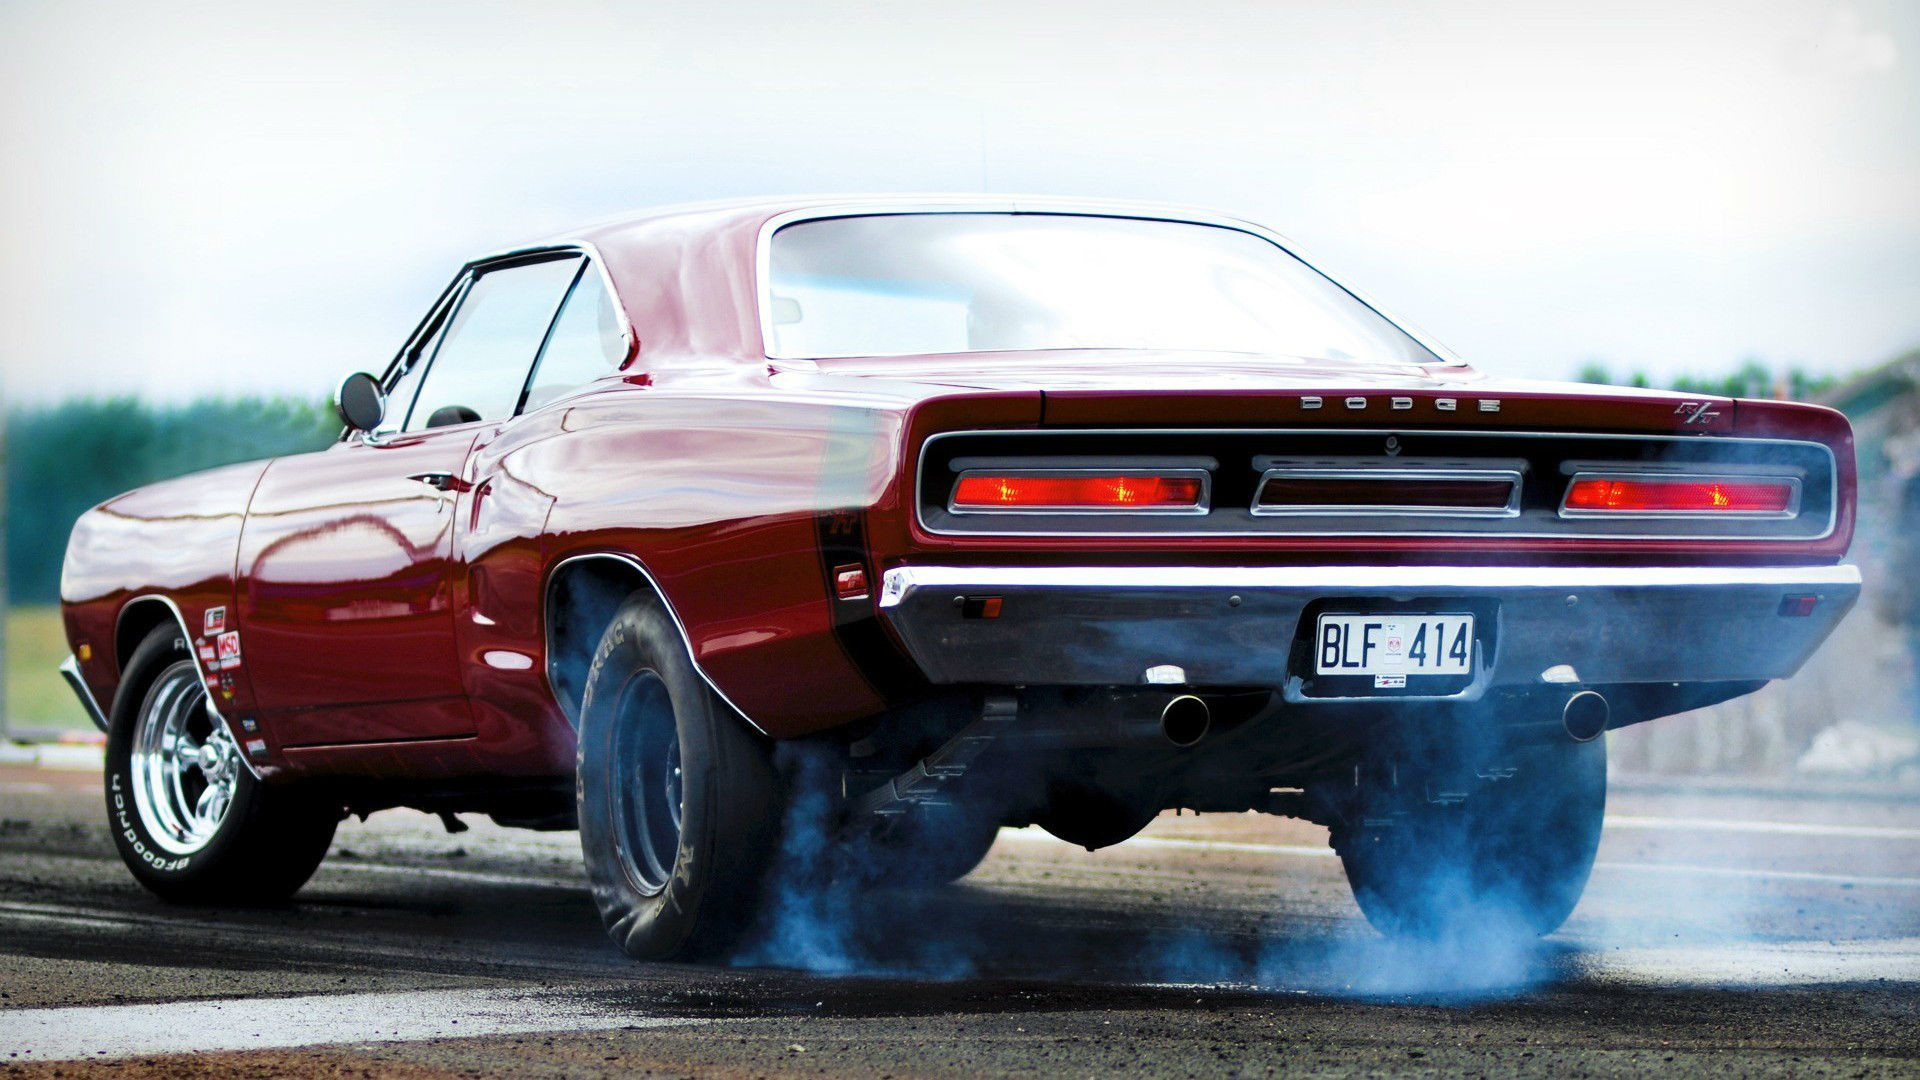 1920x1080 Dodge Charger RT Burnout Wallpaper - HD